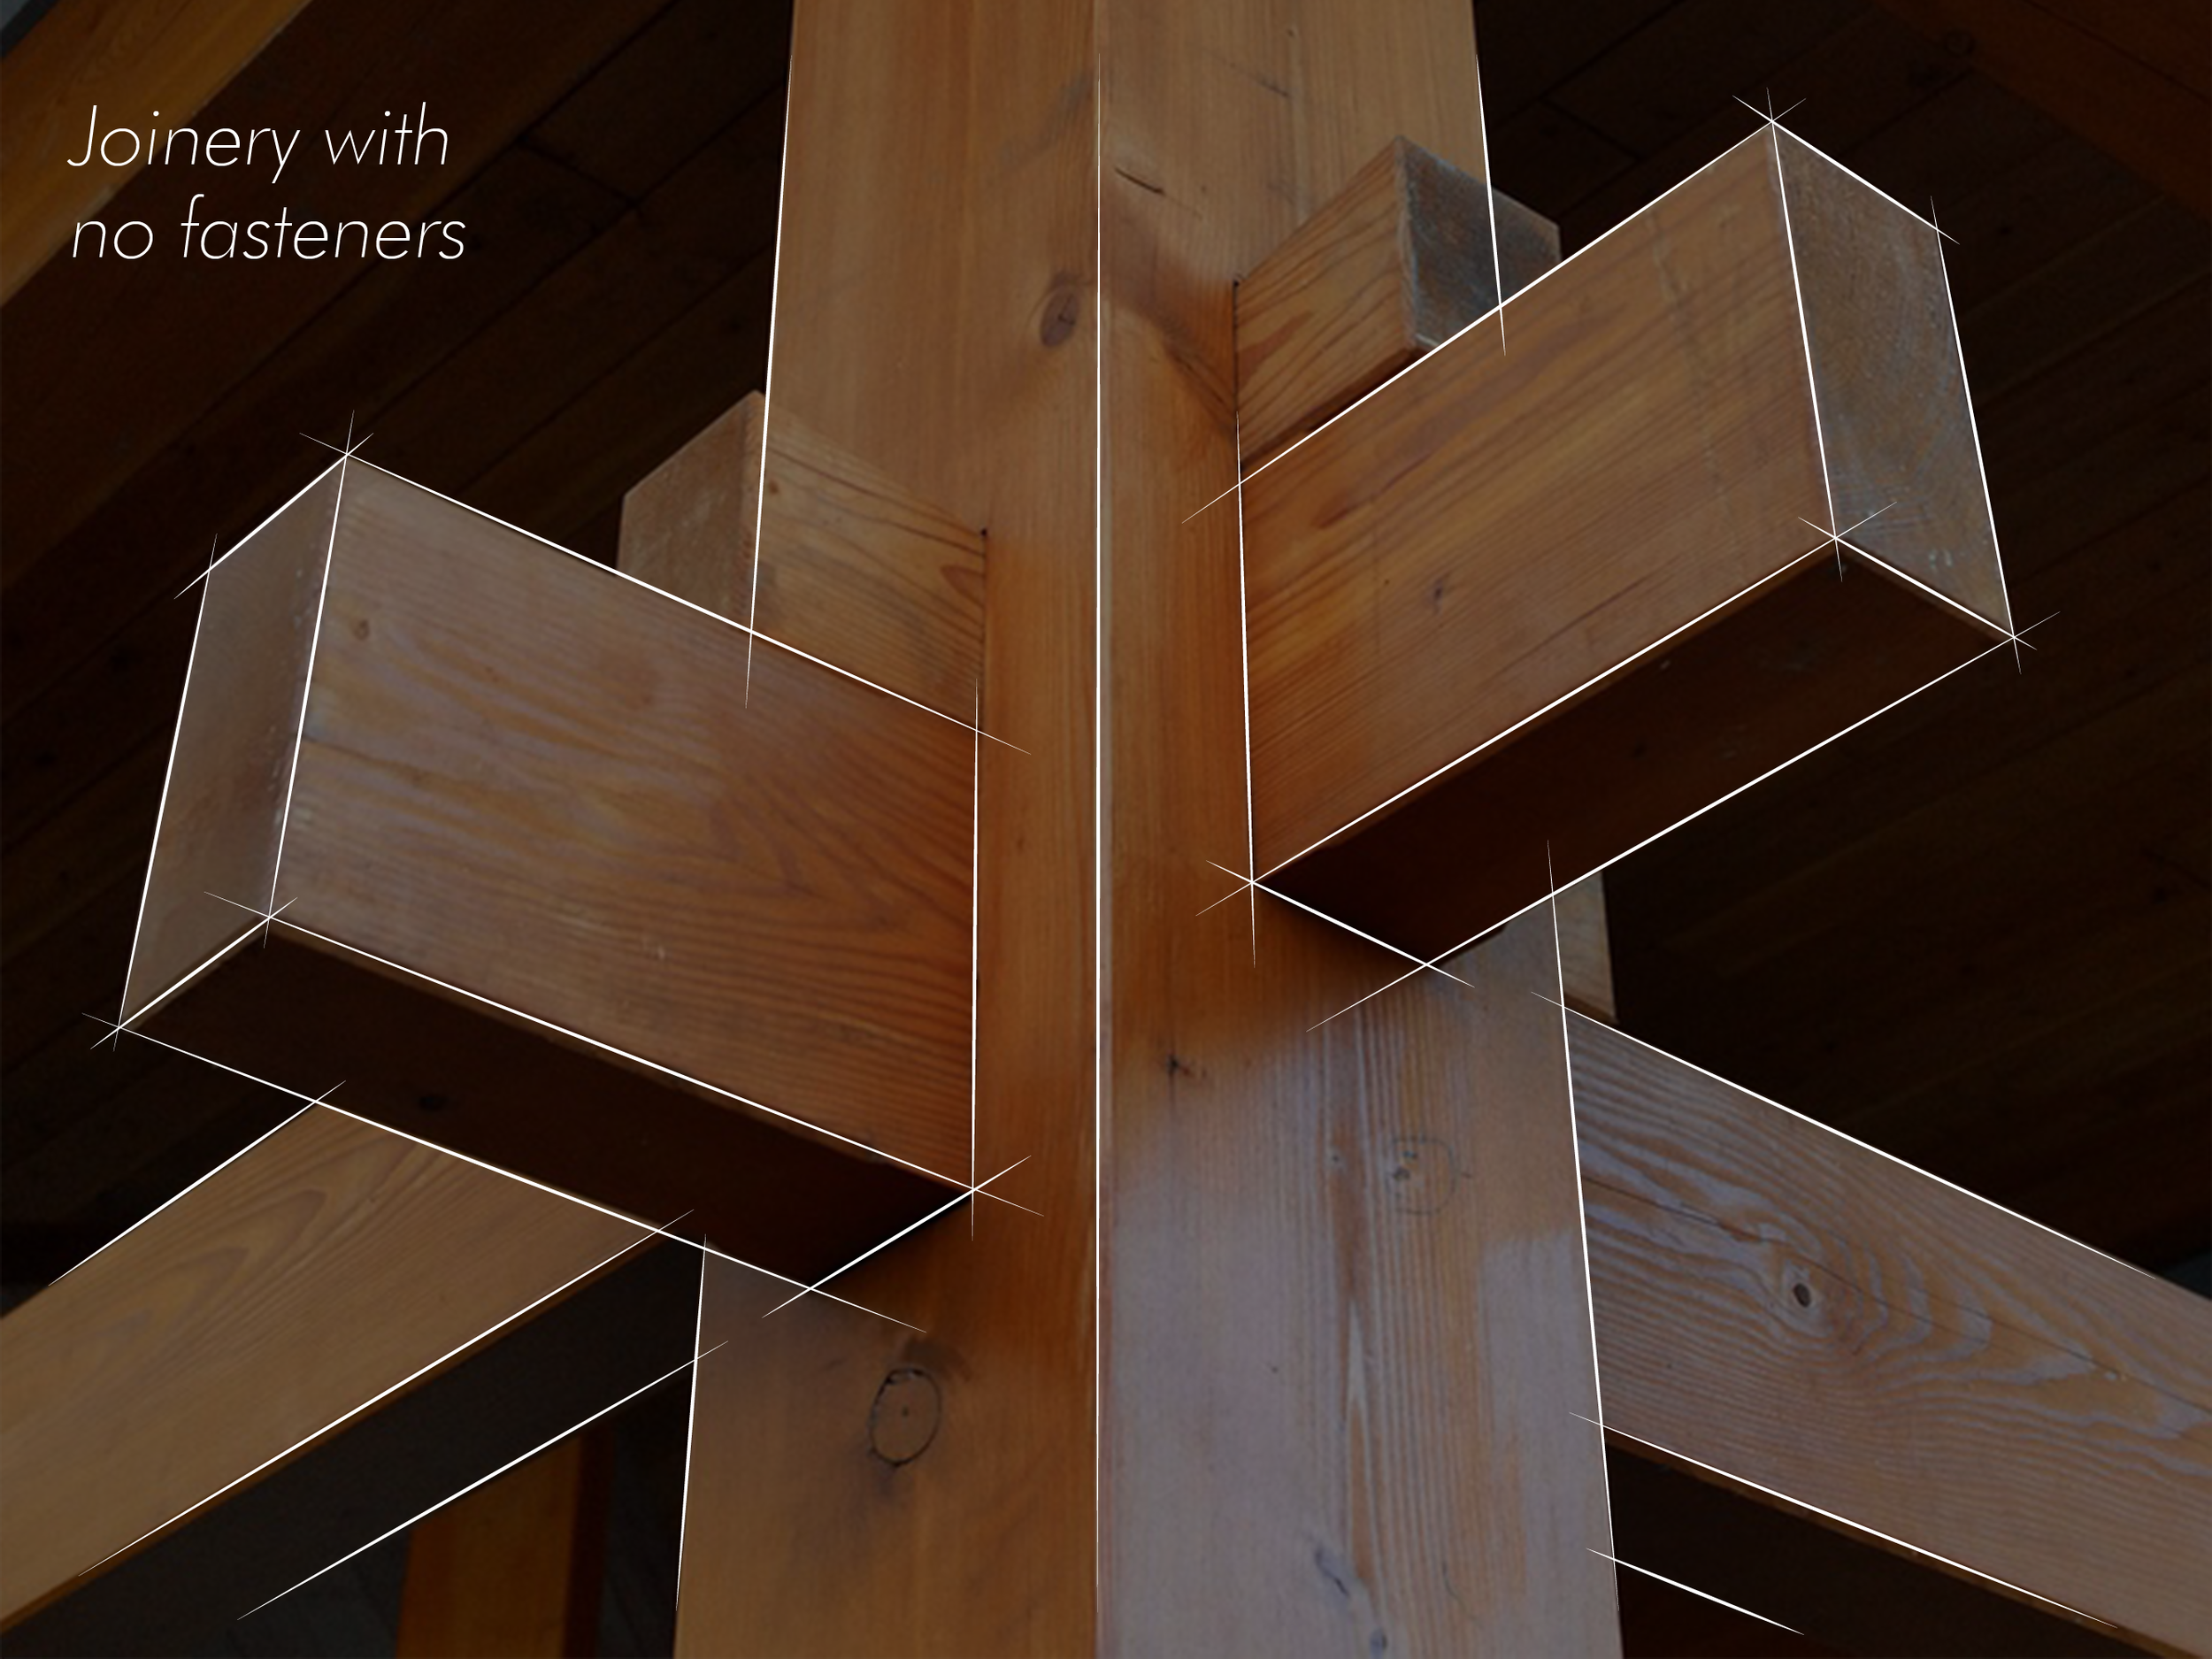 Joinery with few to no fasteners in Japanese Aesthetics-01.png